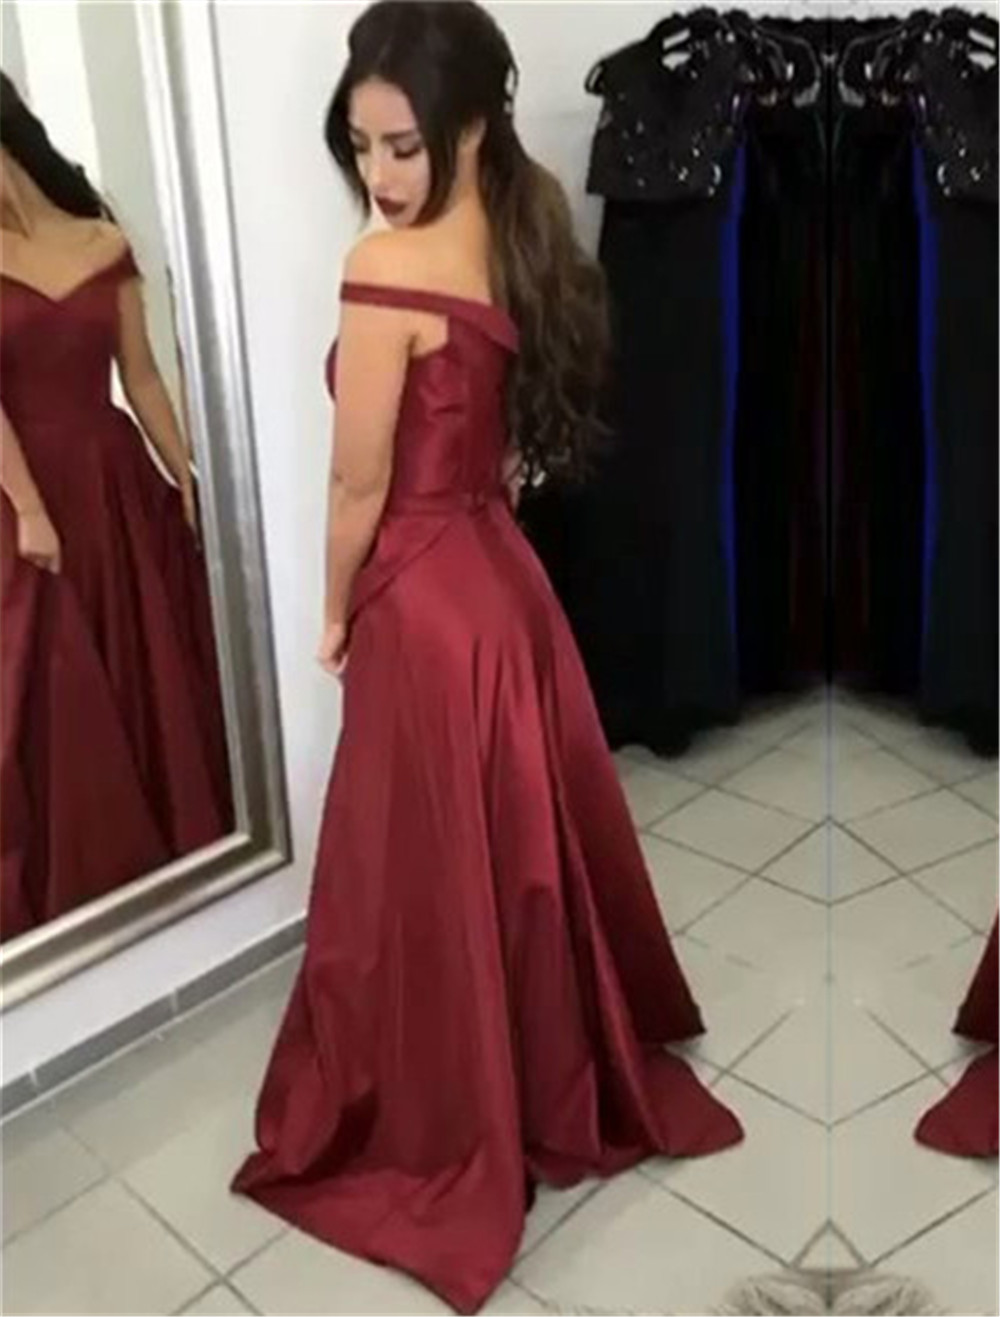 Burgundy Satin Special Occasion Dress Bridesmaid Dresses A line Sweetheart Zipper Wedding Party Dresses Sleeveless Formal in Bridesmaid Dresses from Weddings Events